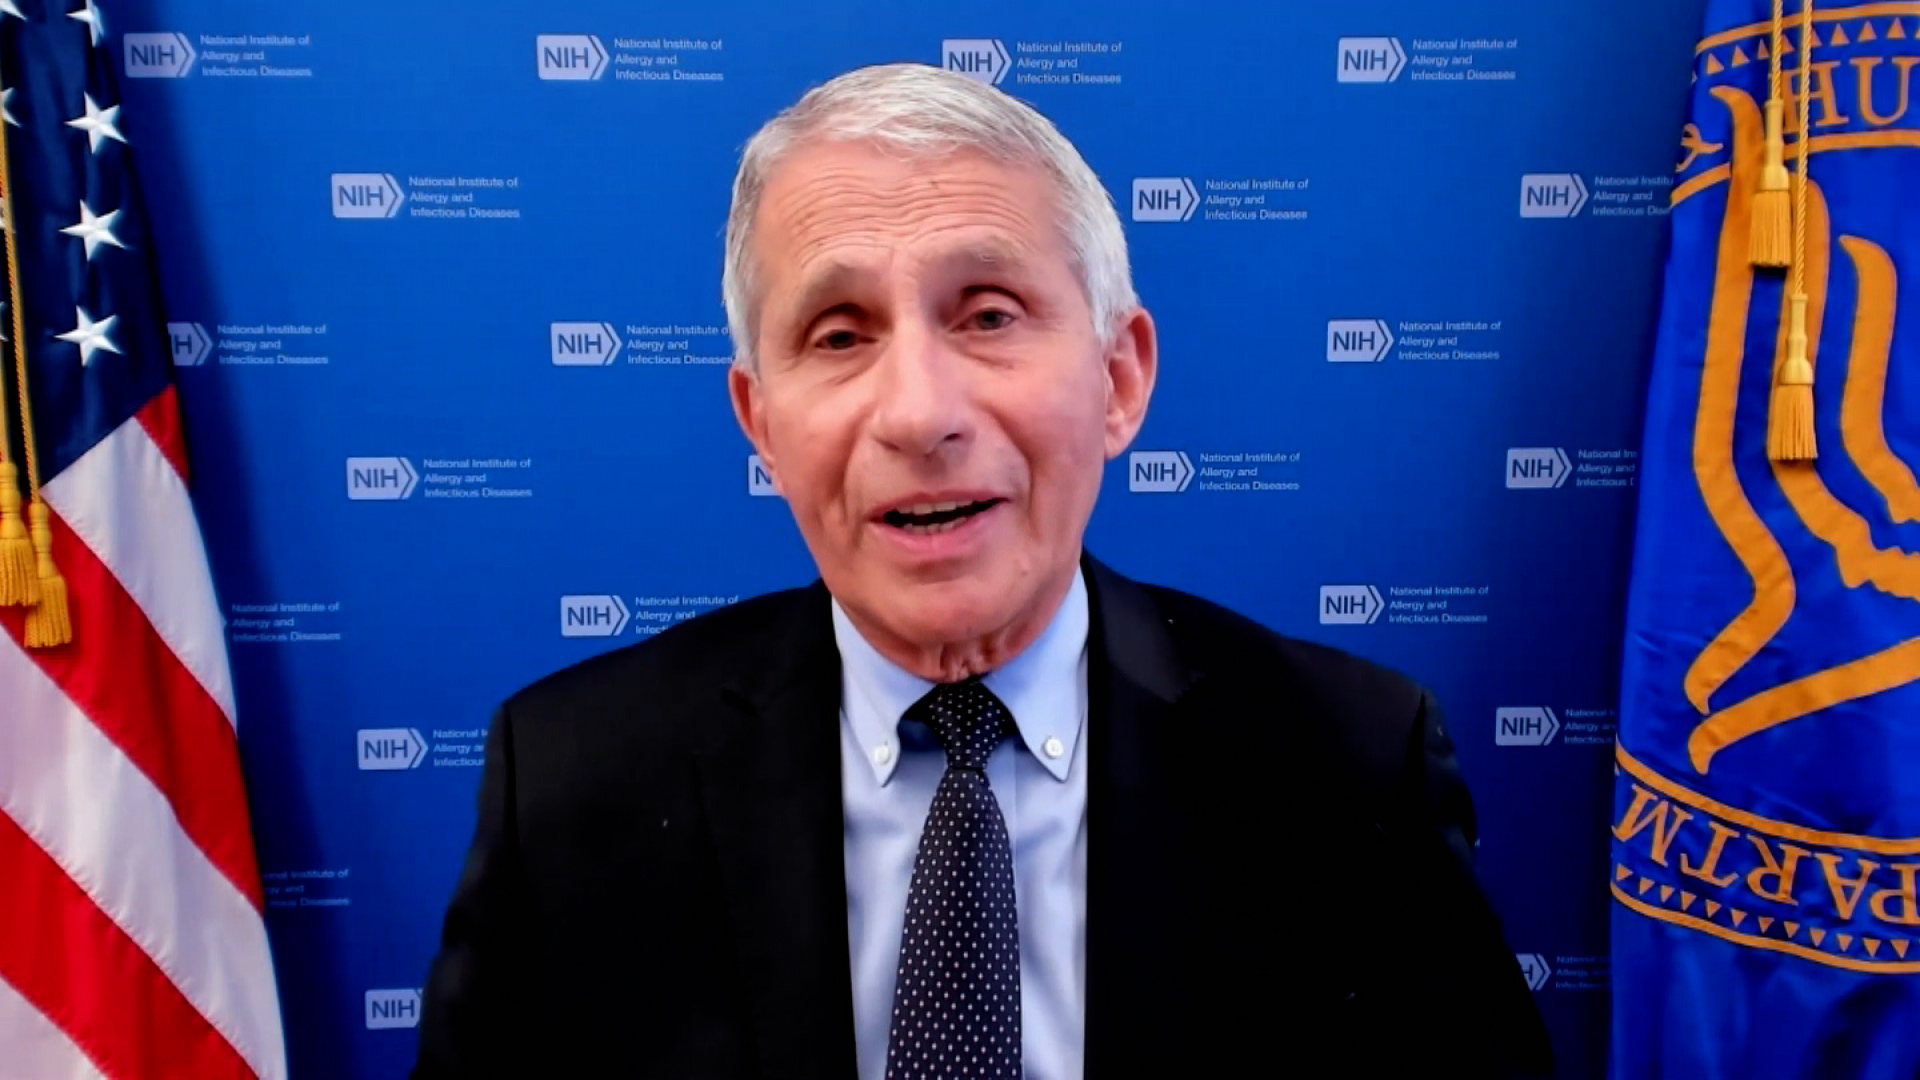 Dr. Anthony Fauci, director of the U.S. National Institute of Allergy and Infectious Diseases and the chief medical adviser to President Biden, speaks during an interview on June 9.